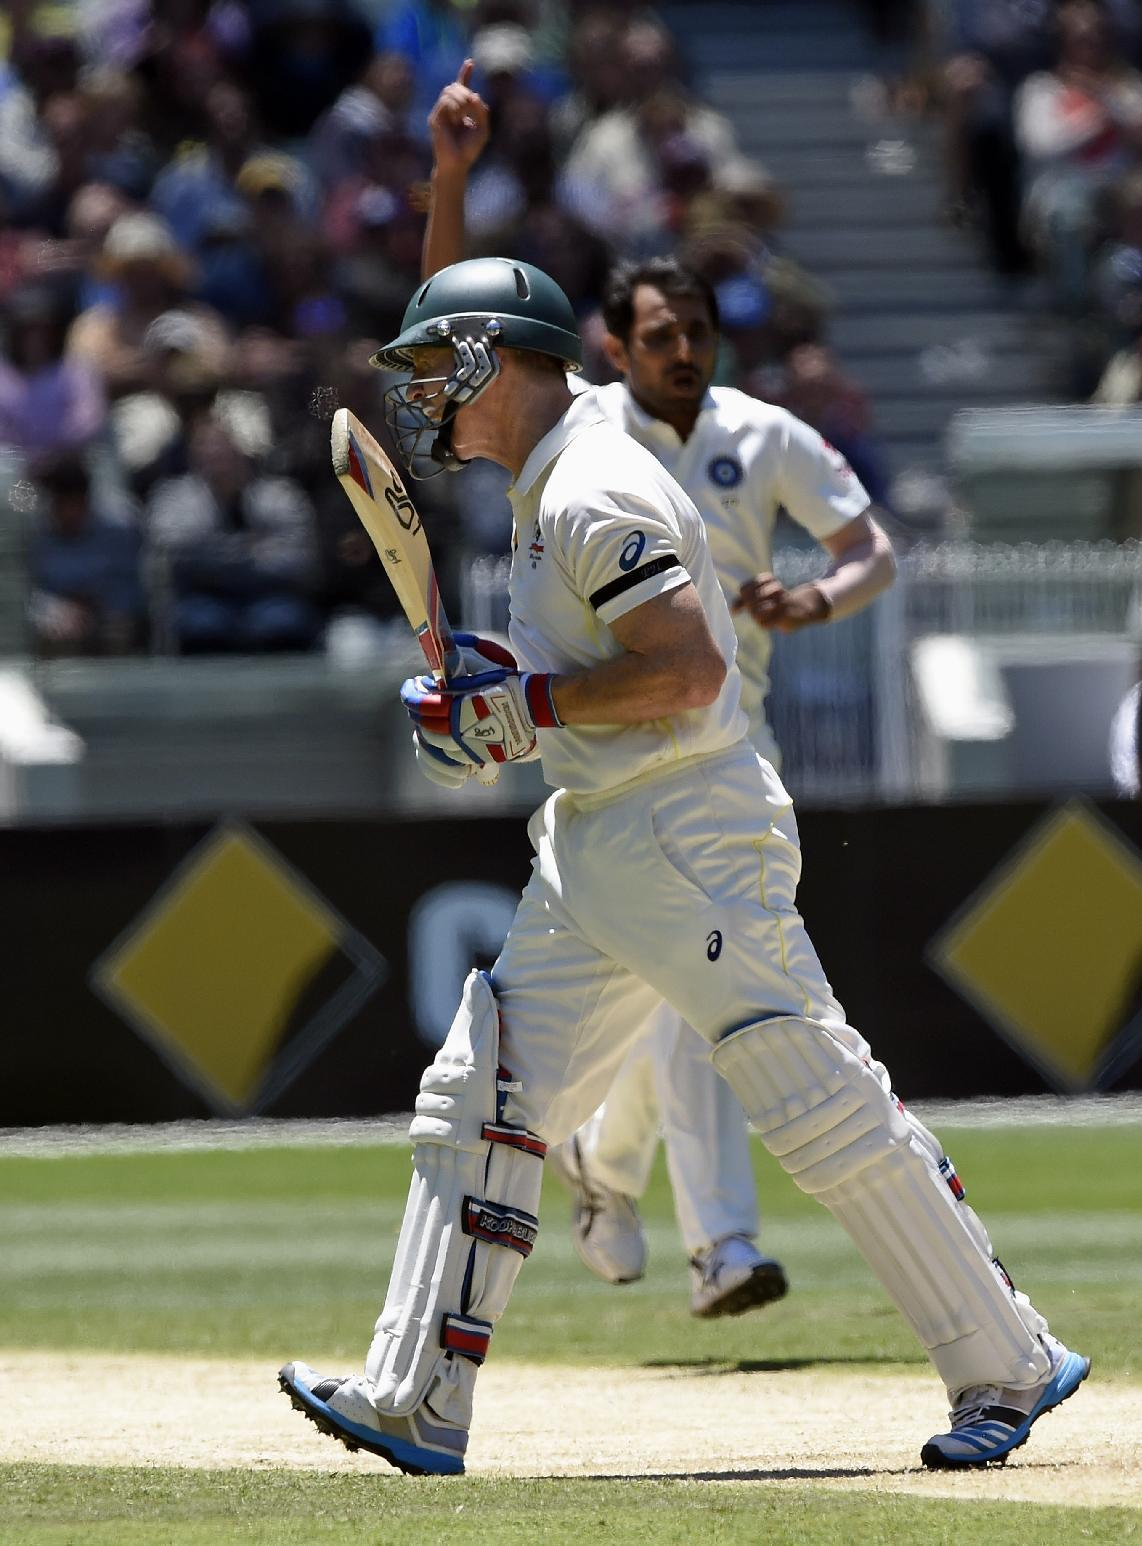 Australia 174-3 at tea on day 1 of 3rd test vs India